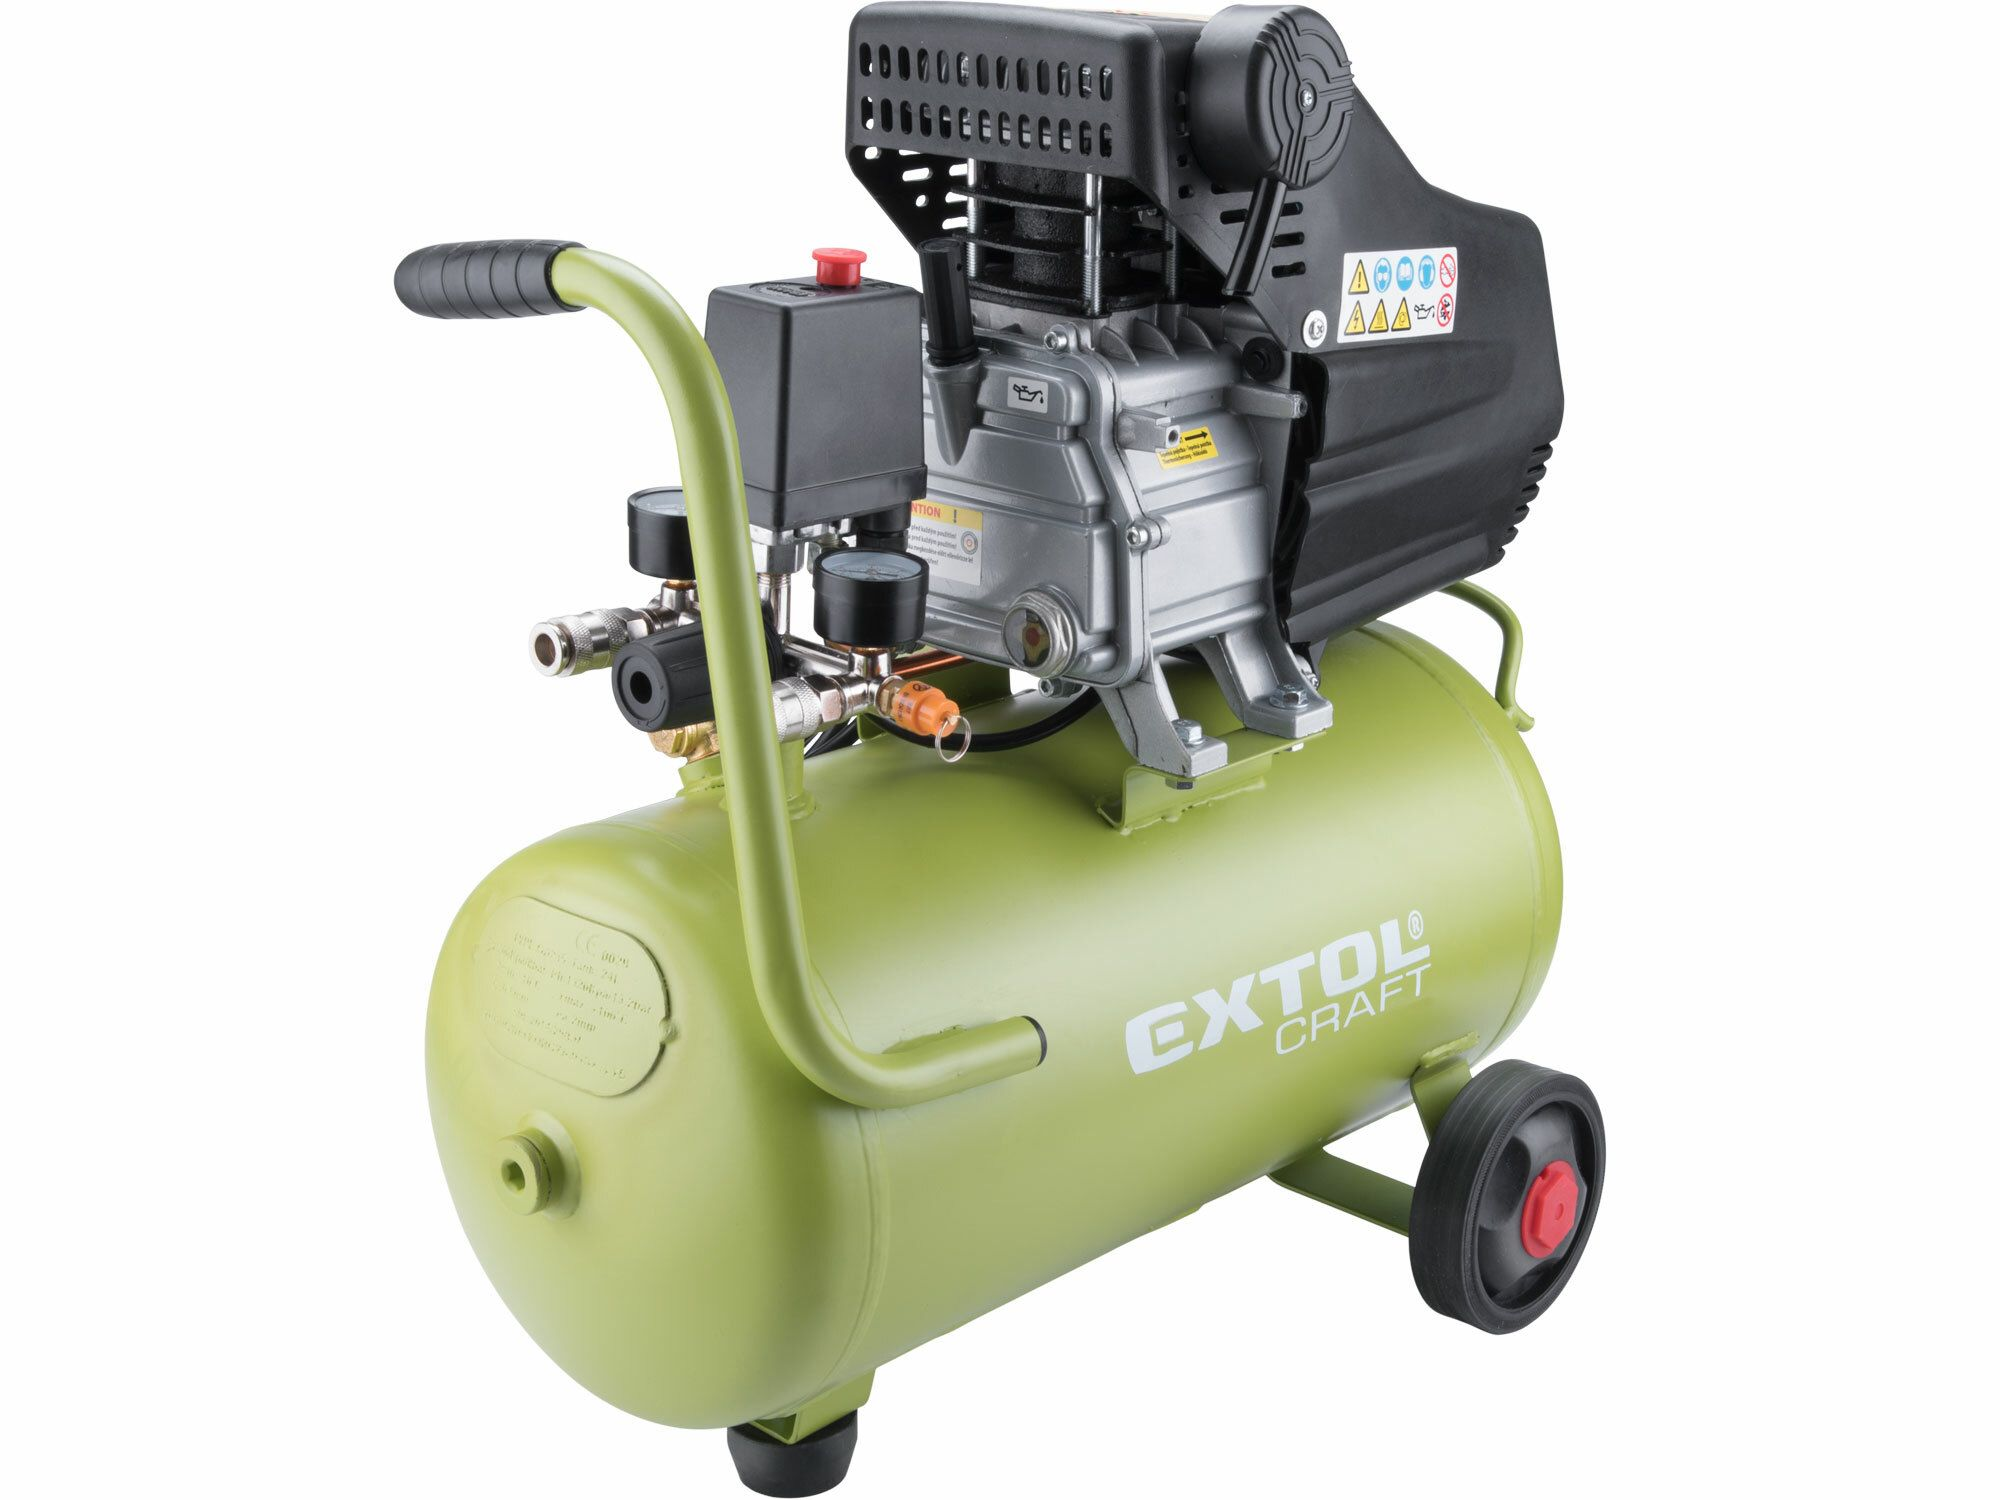 EXTOL CRAFT 418201 kompresor olejový, 1,5kW, 24l